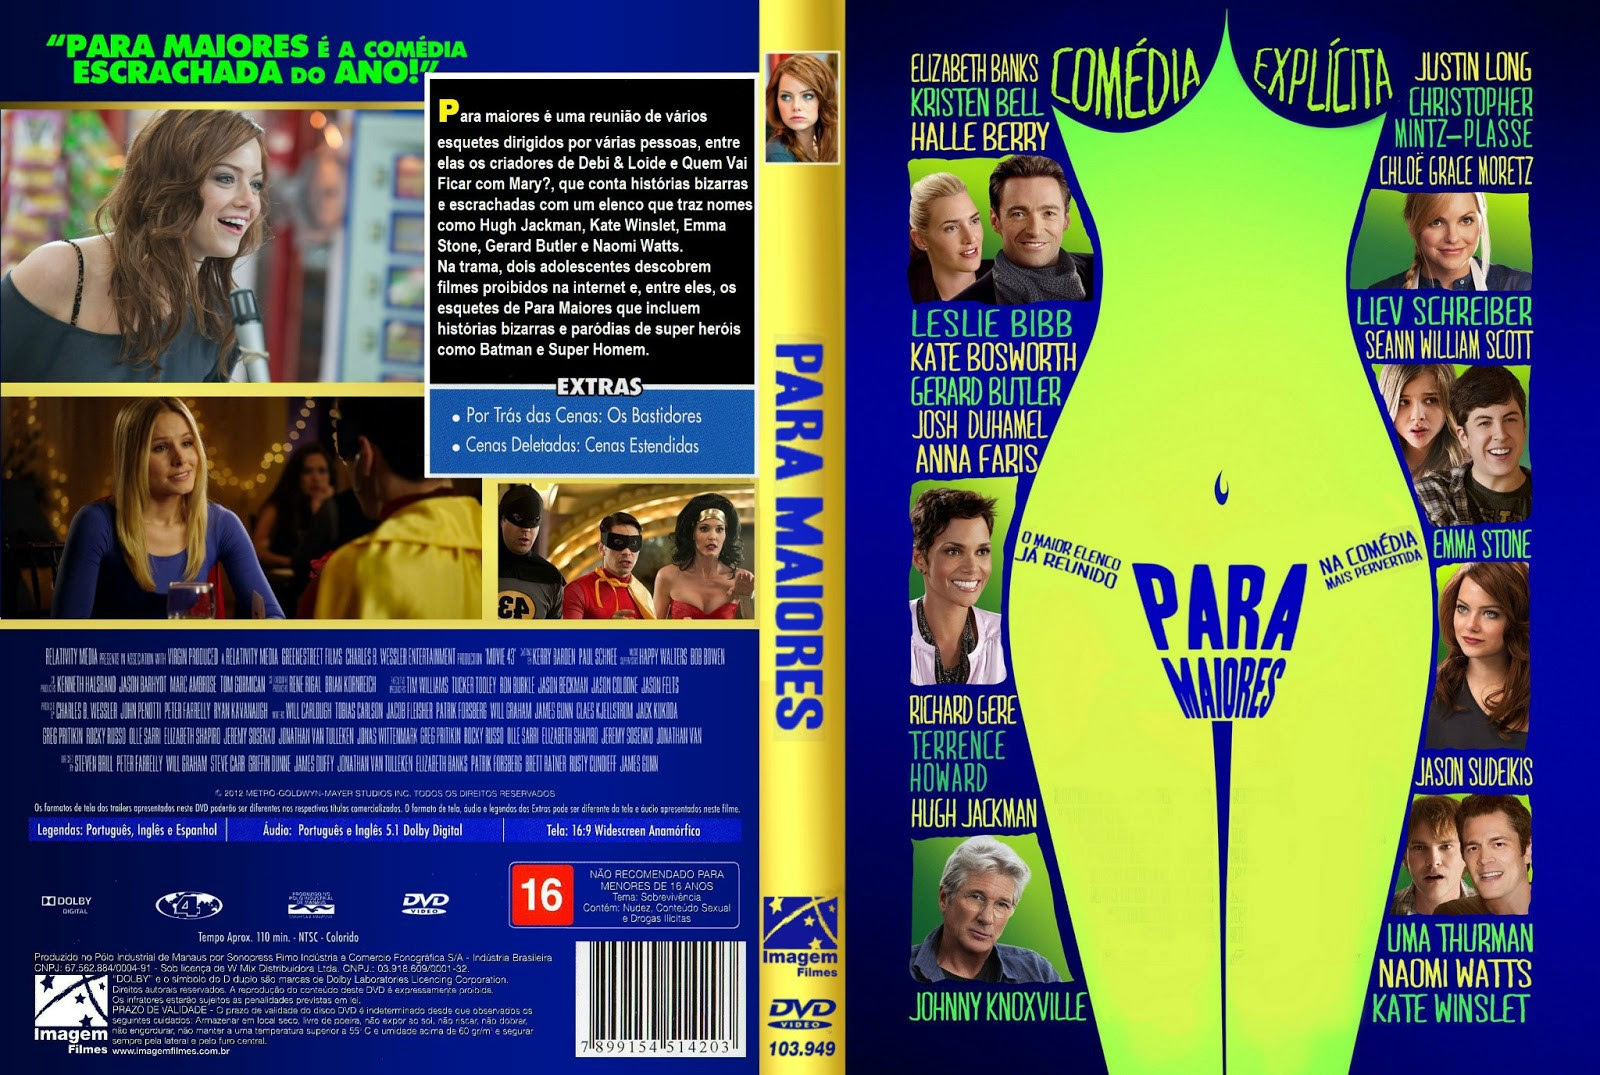 Para Maiores (Movie 43) Torrent – DVDRip Dual Áudio (2013)